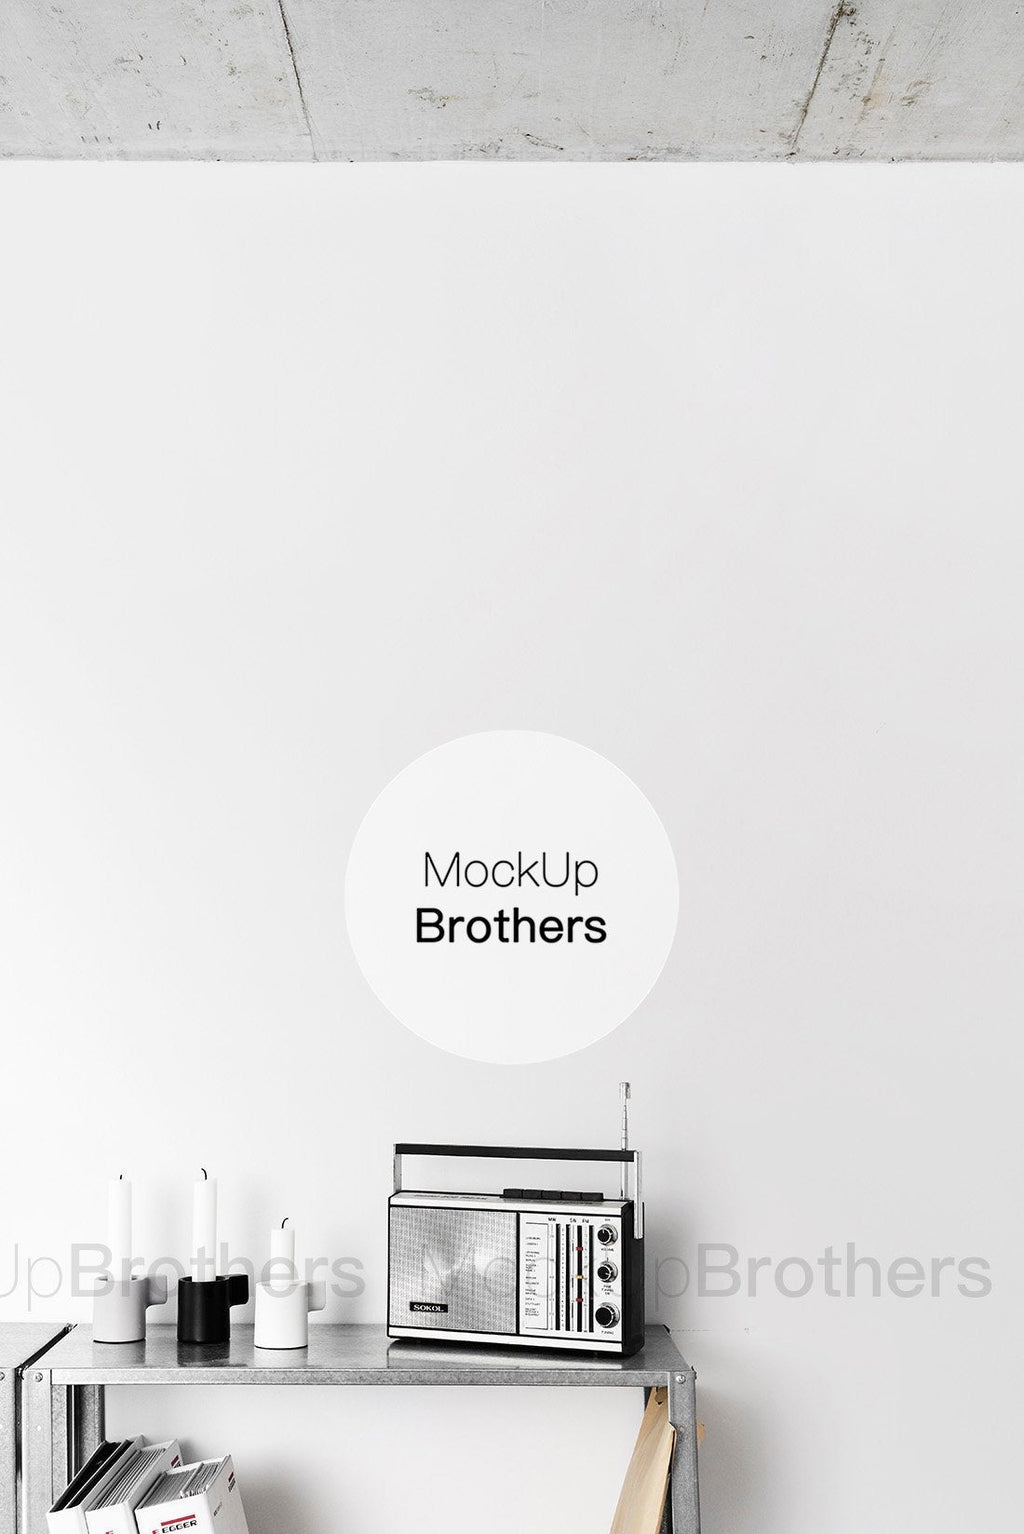 Office interior mockup for artists by Mockup Brothers